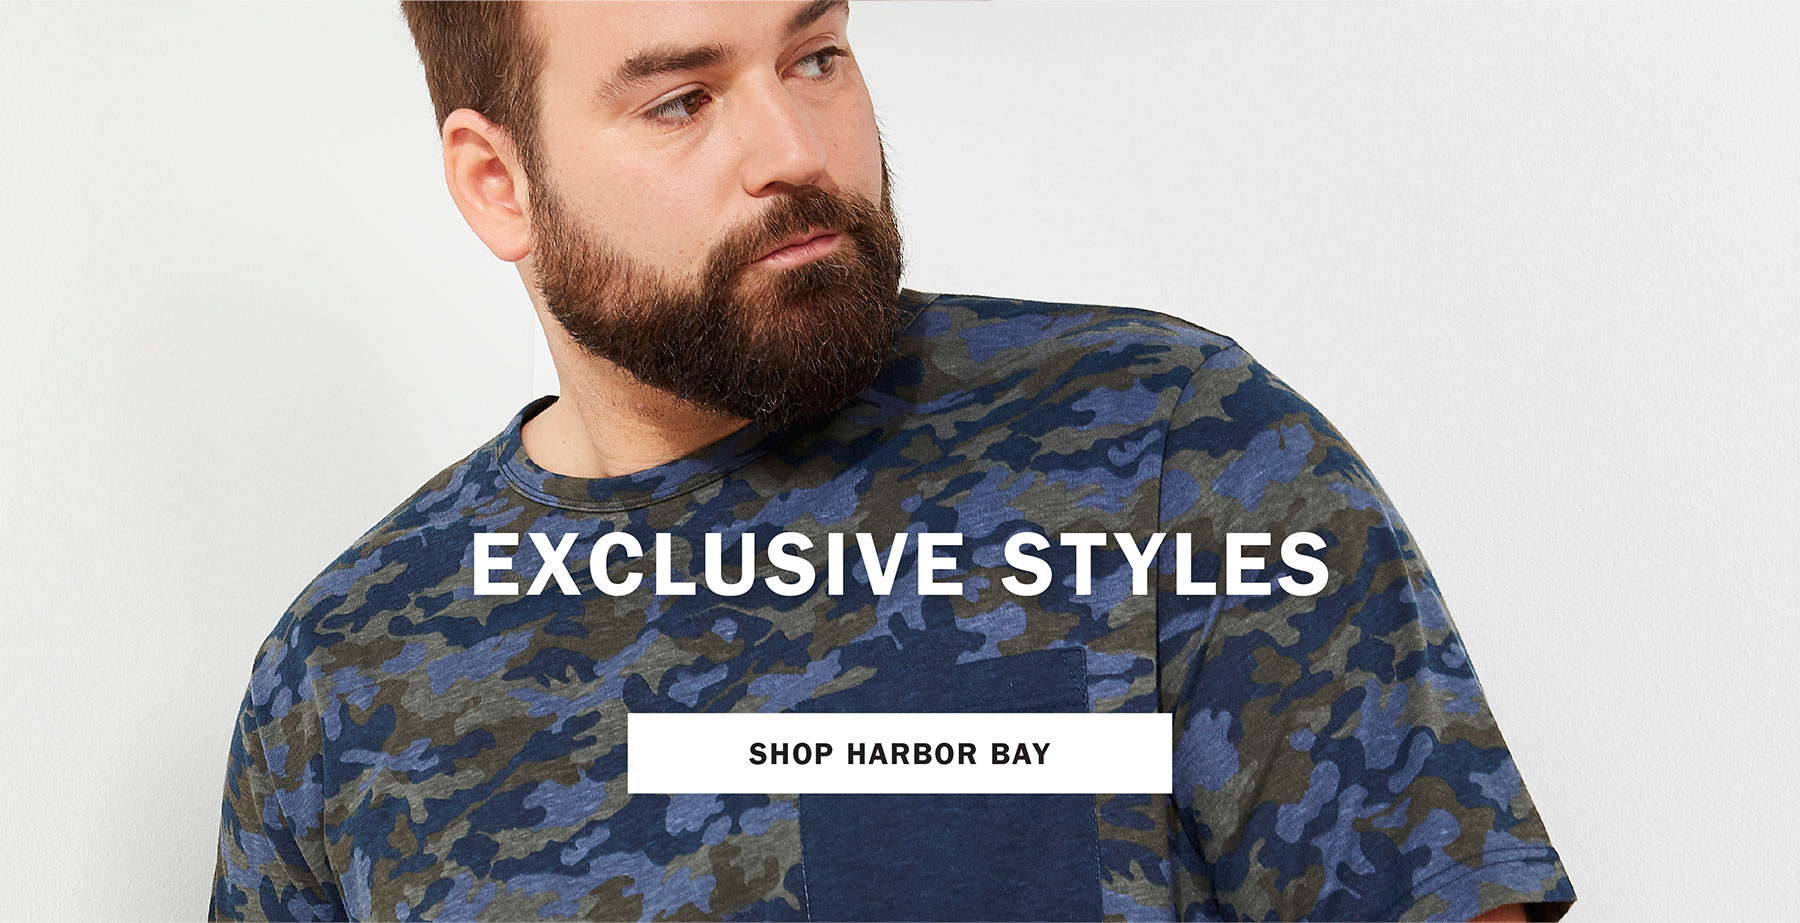 EXCLUSIVE STYLES | SHOP HARBOR BAY